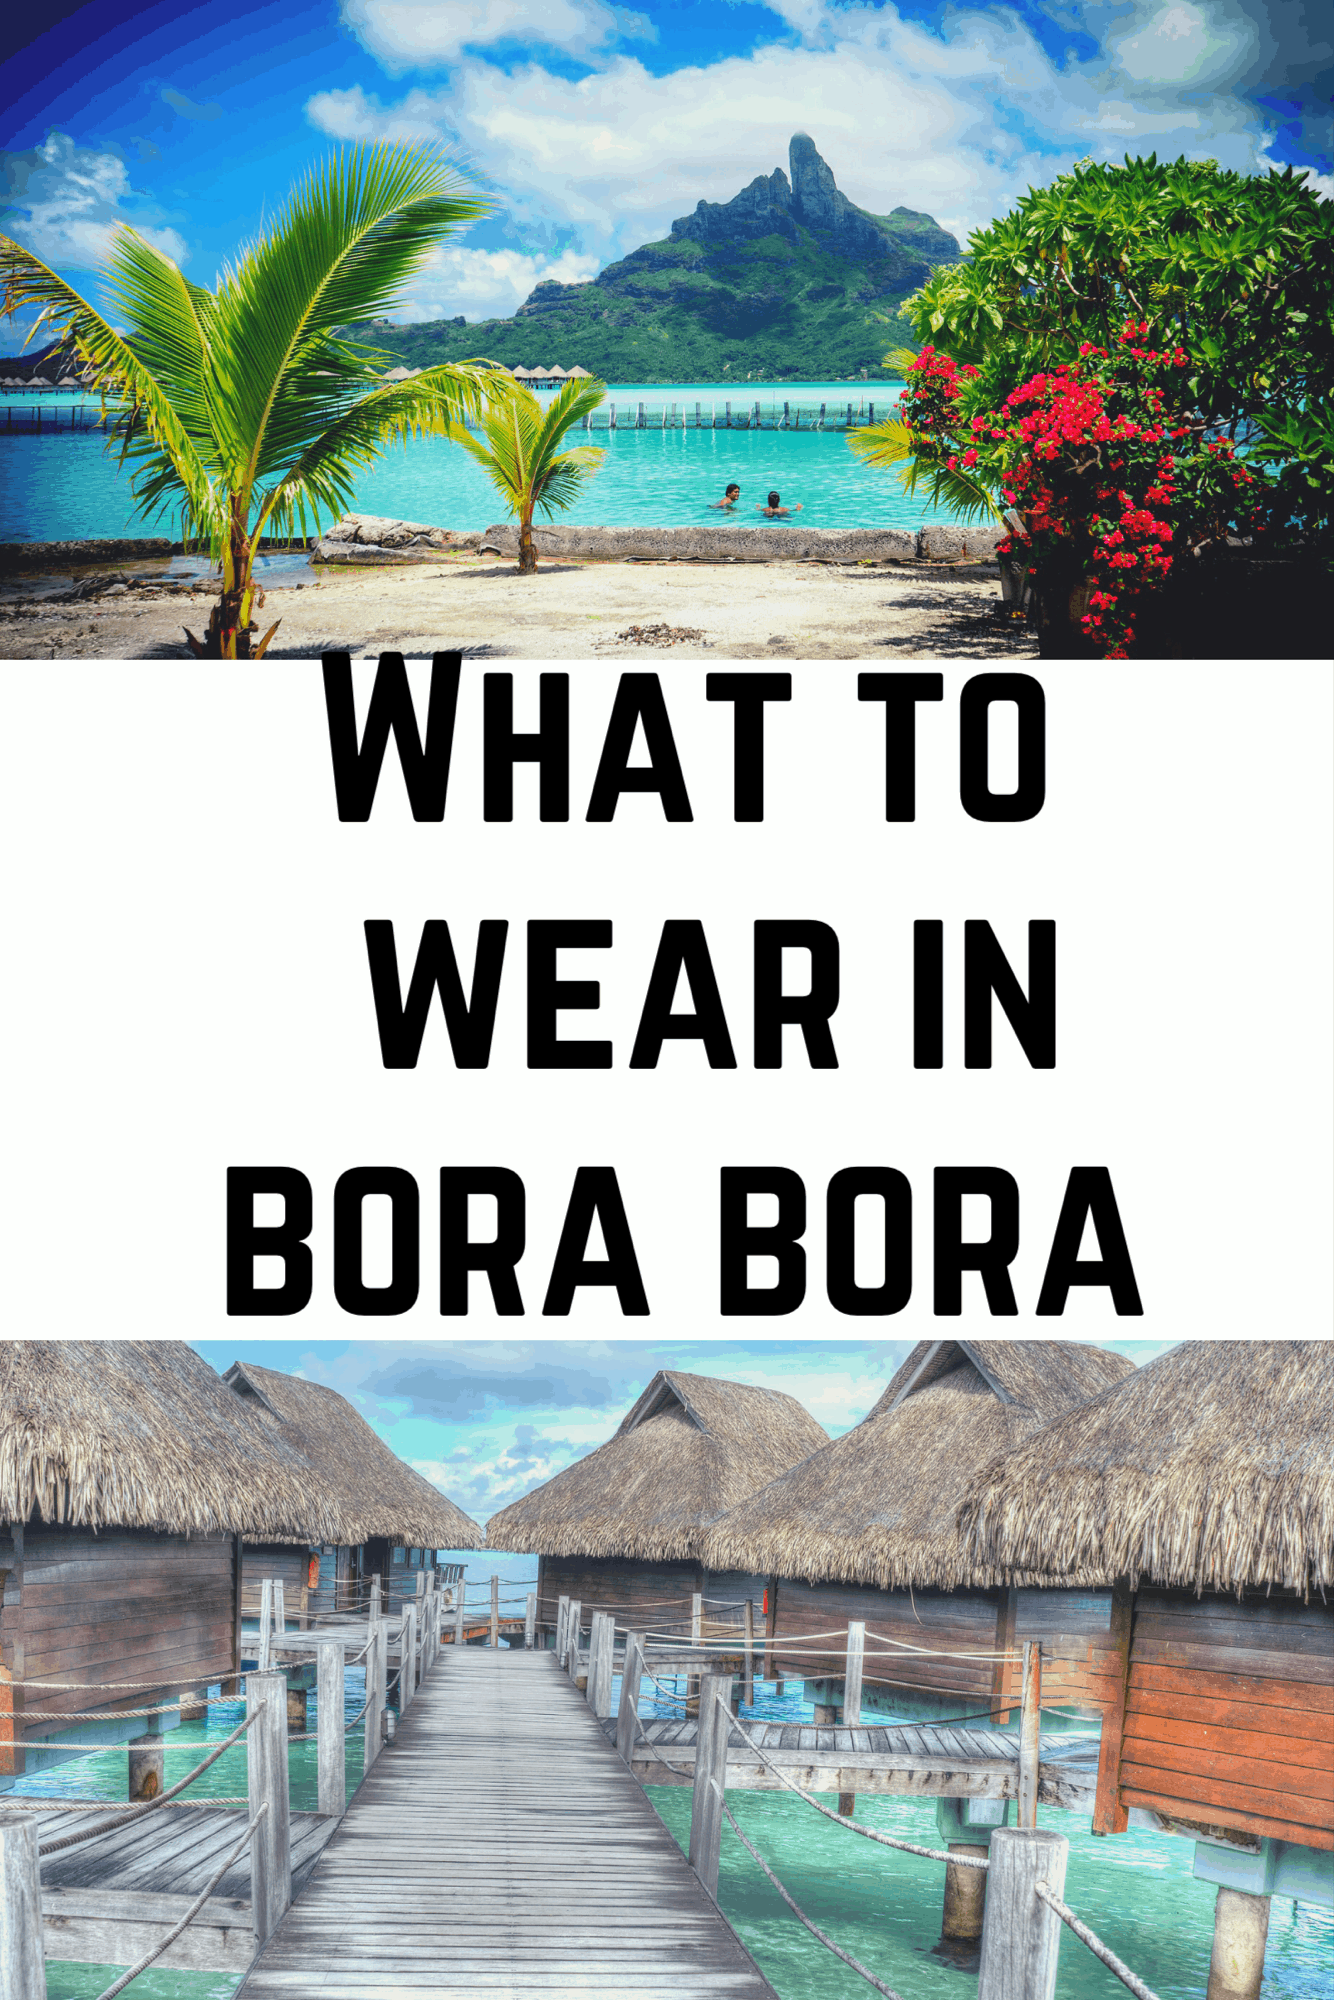 Ultimate Bora Bora Packing List - What to wear in Bora Bora - #borabora #packinglist #frenchpolynesia #moorea #tahiti